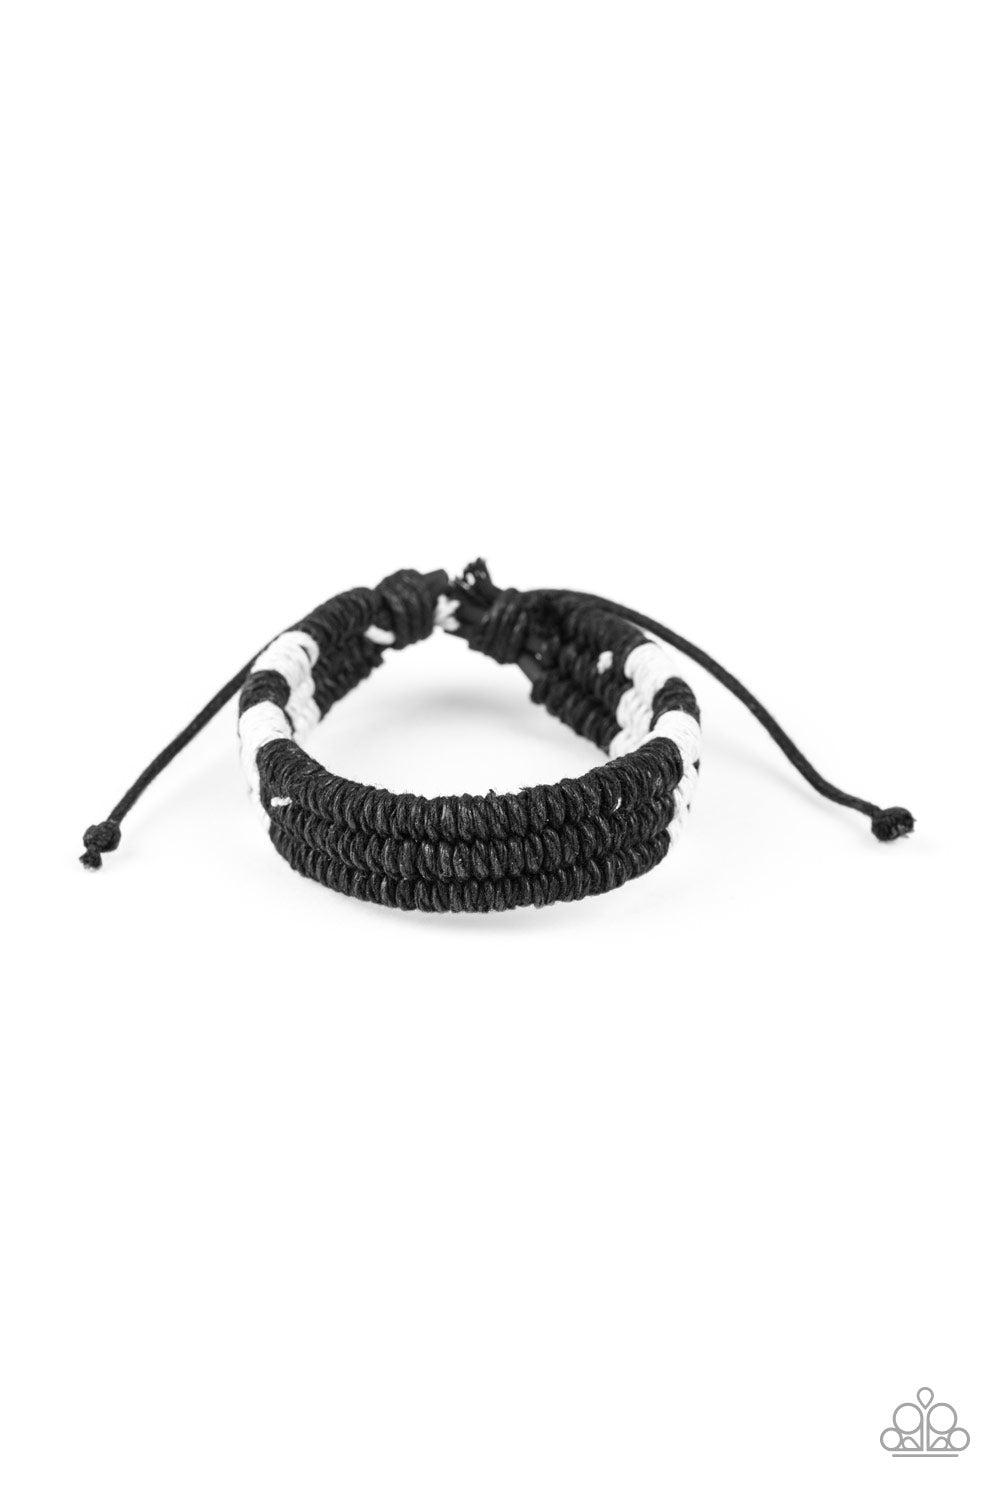 Paparazzi Men's Urban Bracelet-Rural Rogue-Black